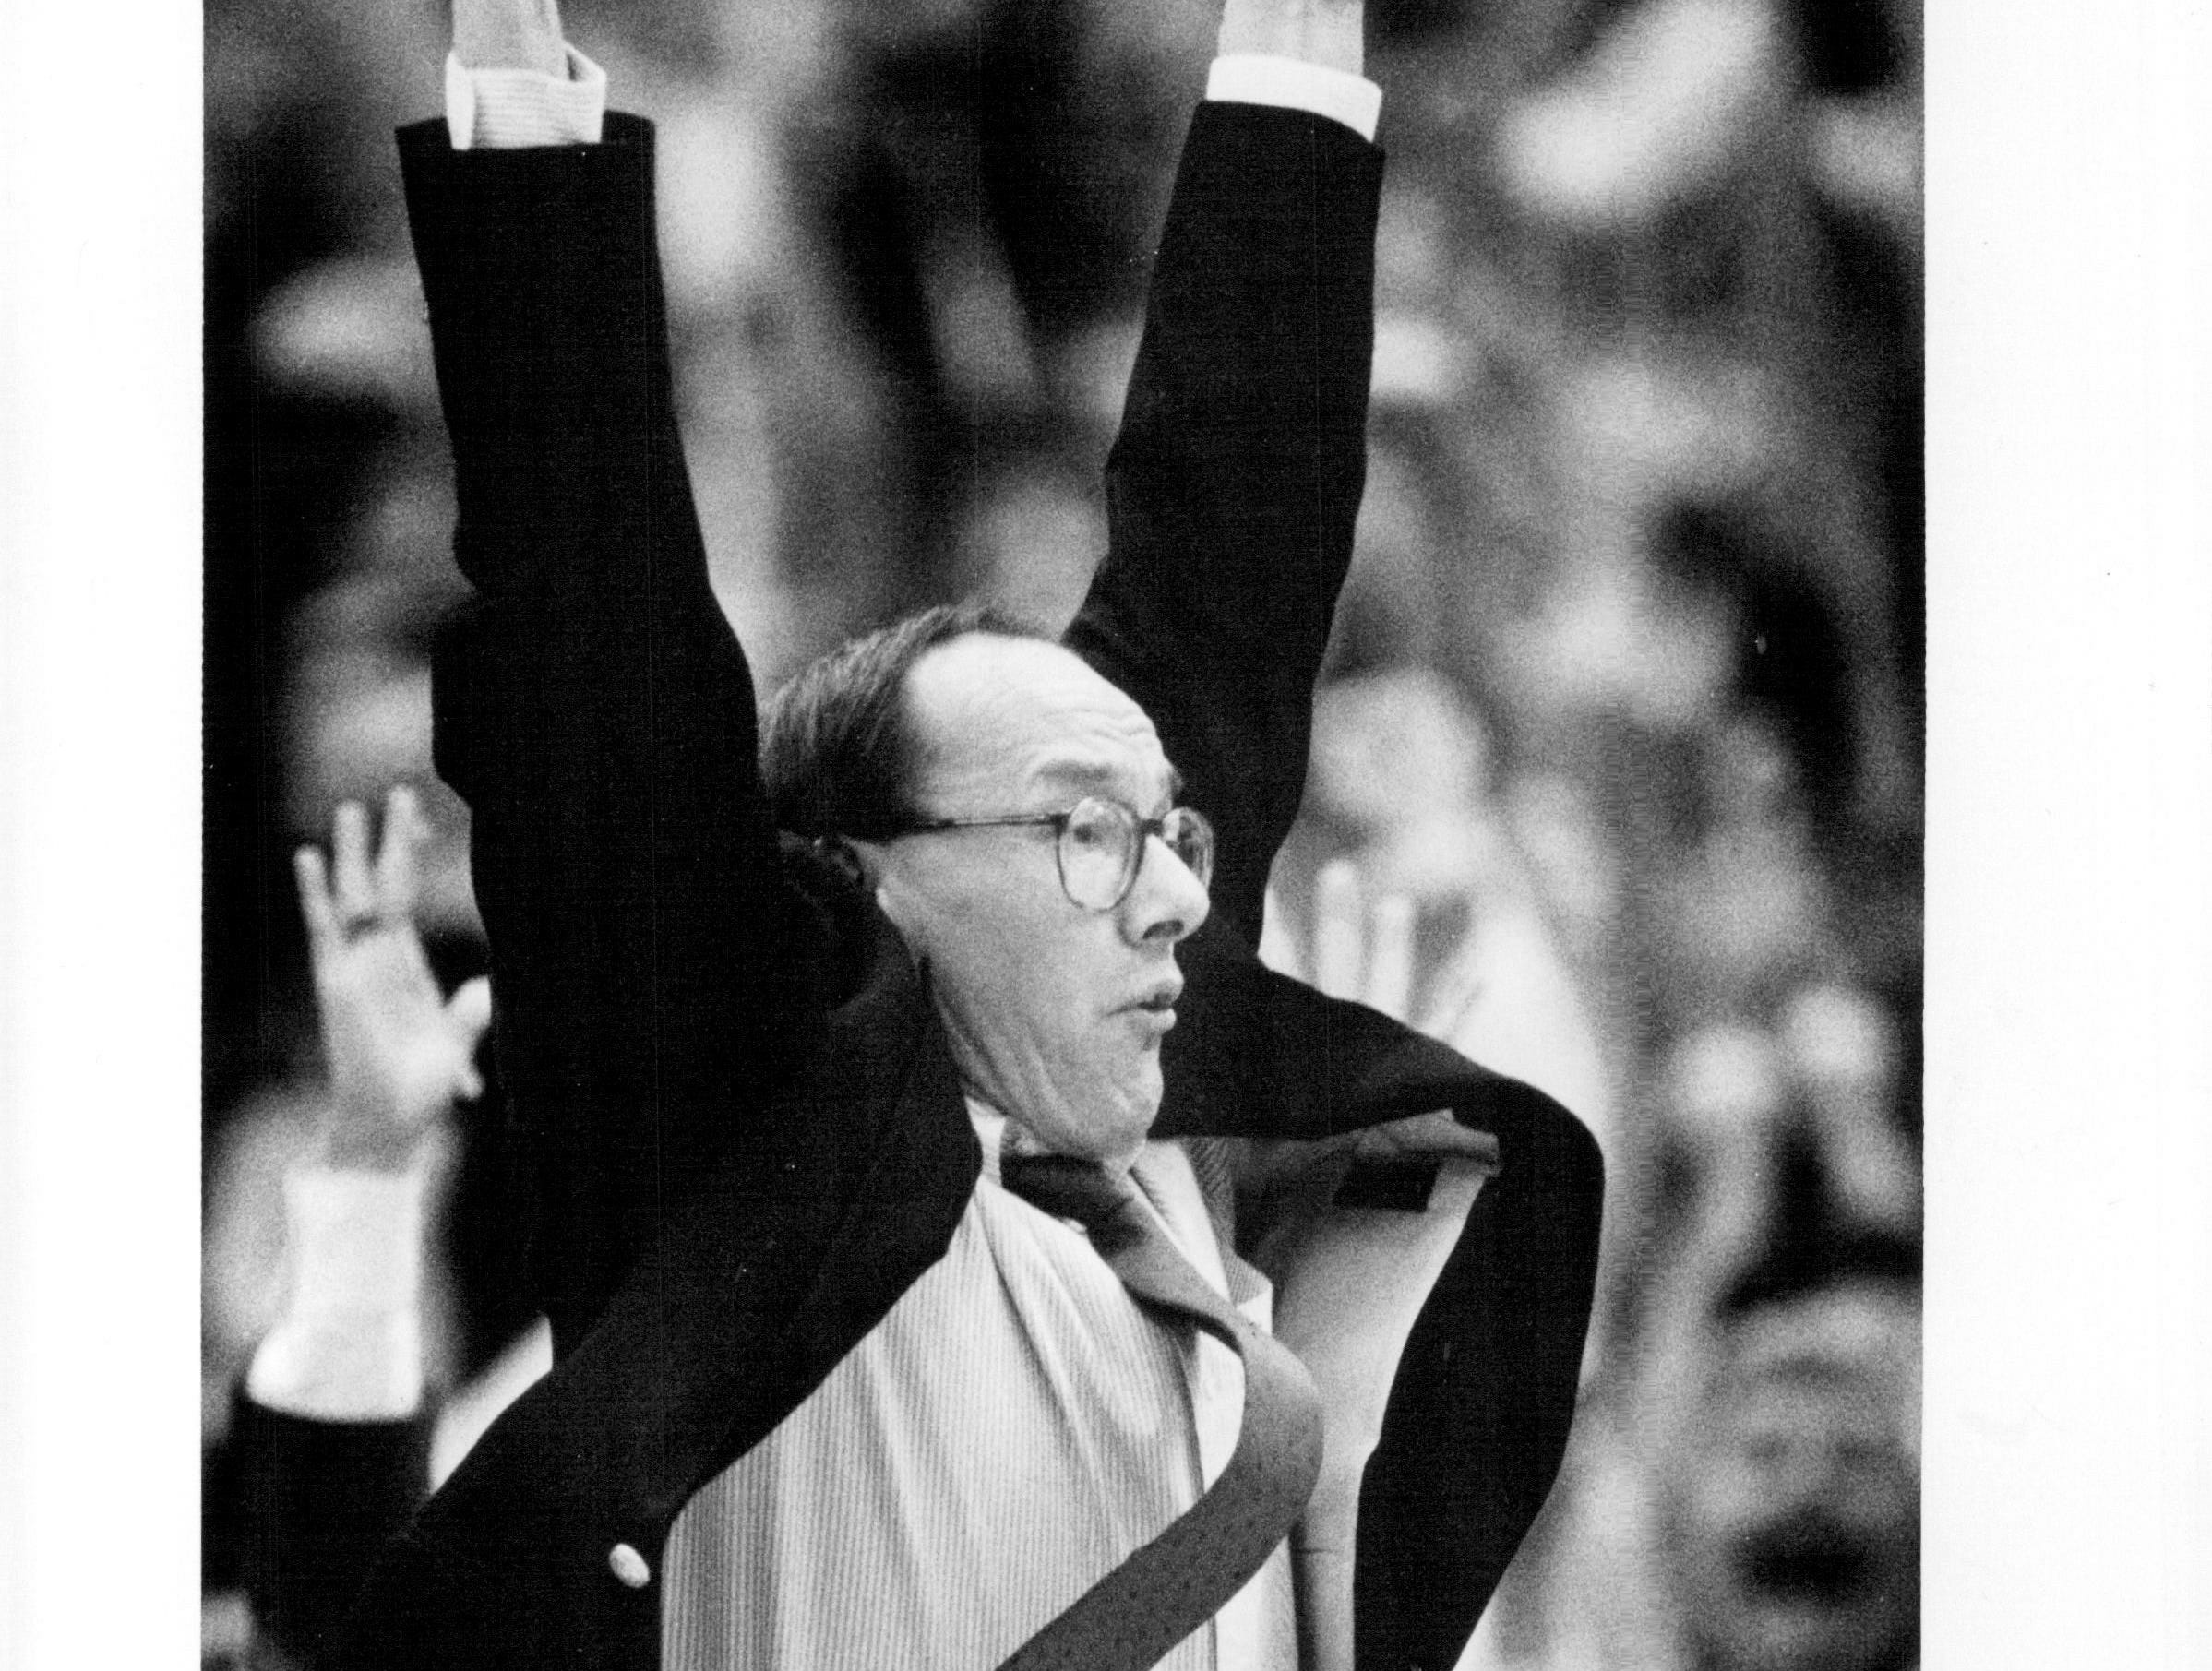 Jim Boeheim encourages his team during a rally in am 85-84 loss to Pittsburgh on March 5, 1988.